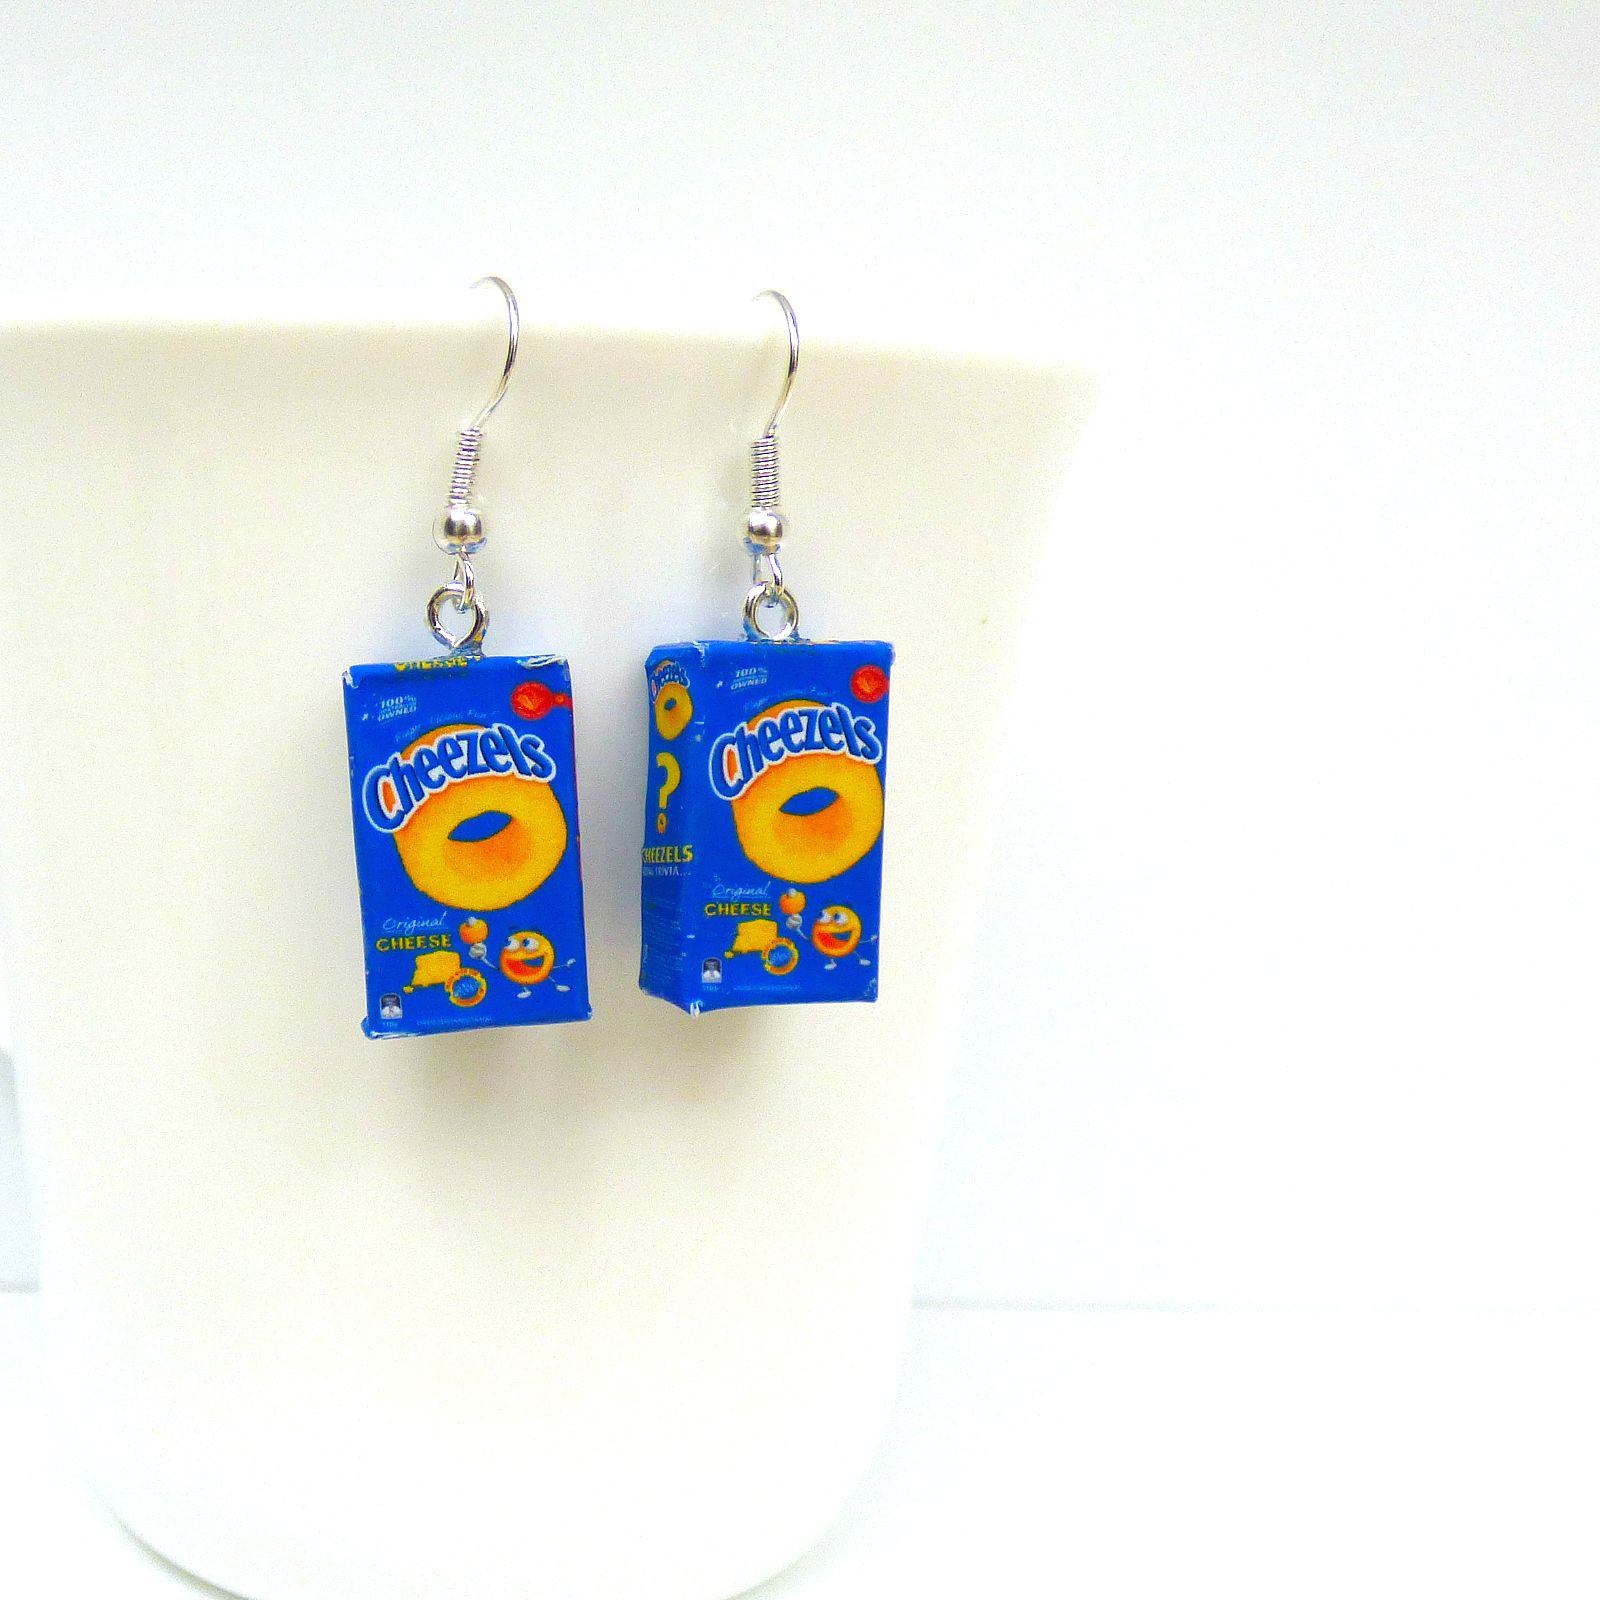 A Fun Gift To Send Overseas Friends And Family Handcrafted In Australia From Wood Https Www Openingfairydoors Au Product Cheezels Earrings